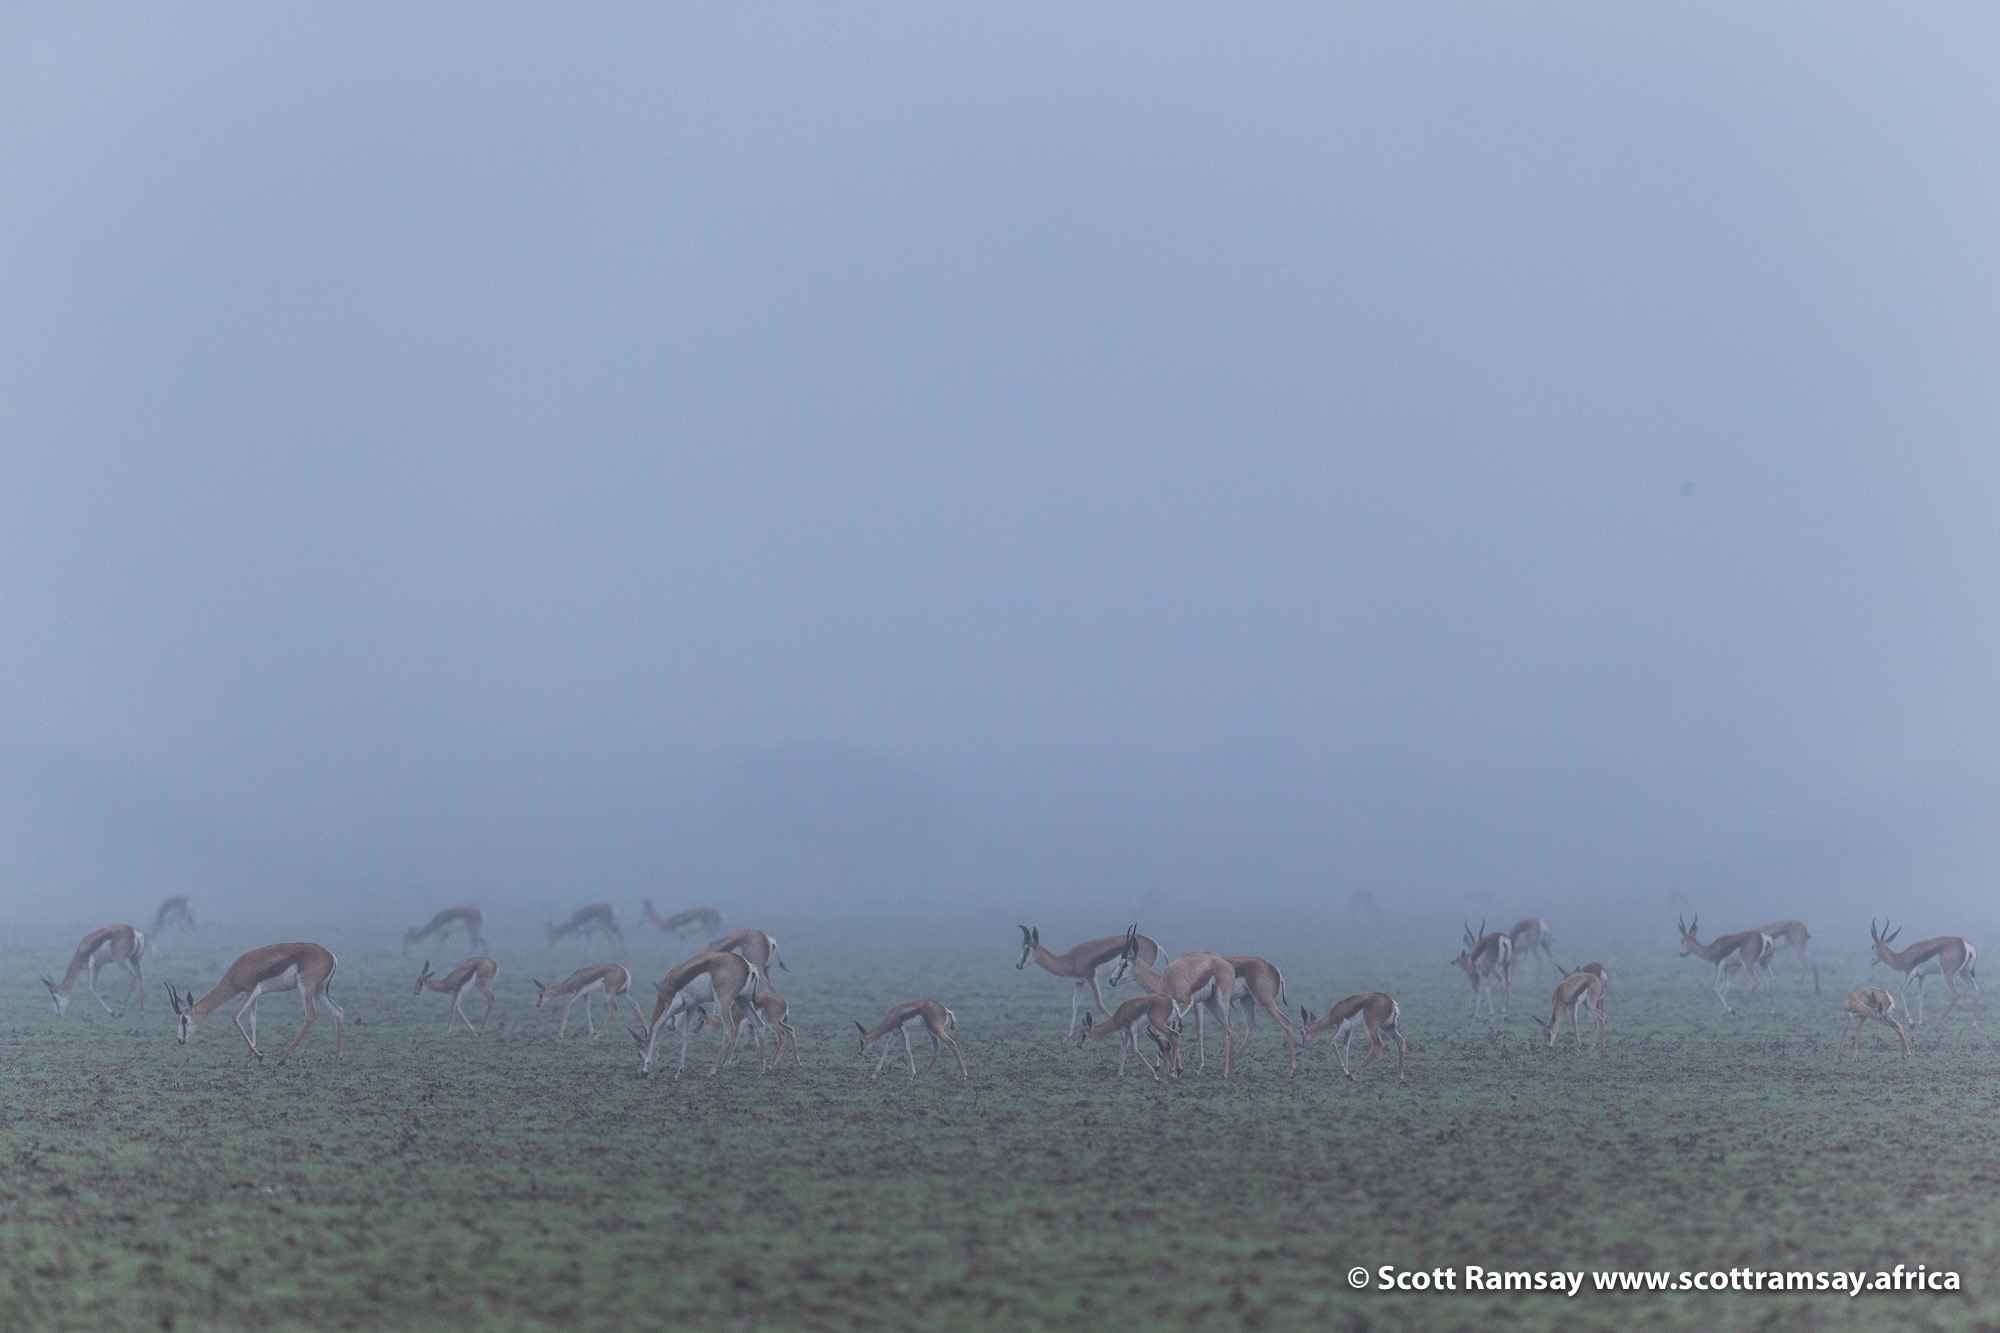 On our first morning camping near Deception Pan, we woke up to remarkable conditions...a low mist that had settled over the Kalahari. Unusual conditions for the middle of summer...for any time of year! We watched a herd of springbok grazing nearby to our campsite.